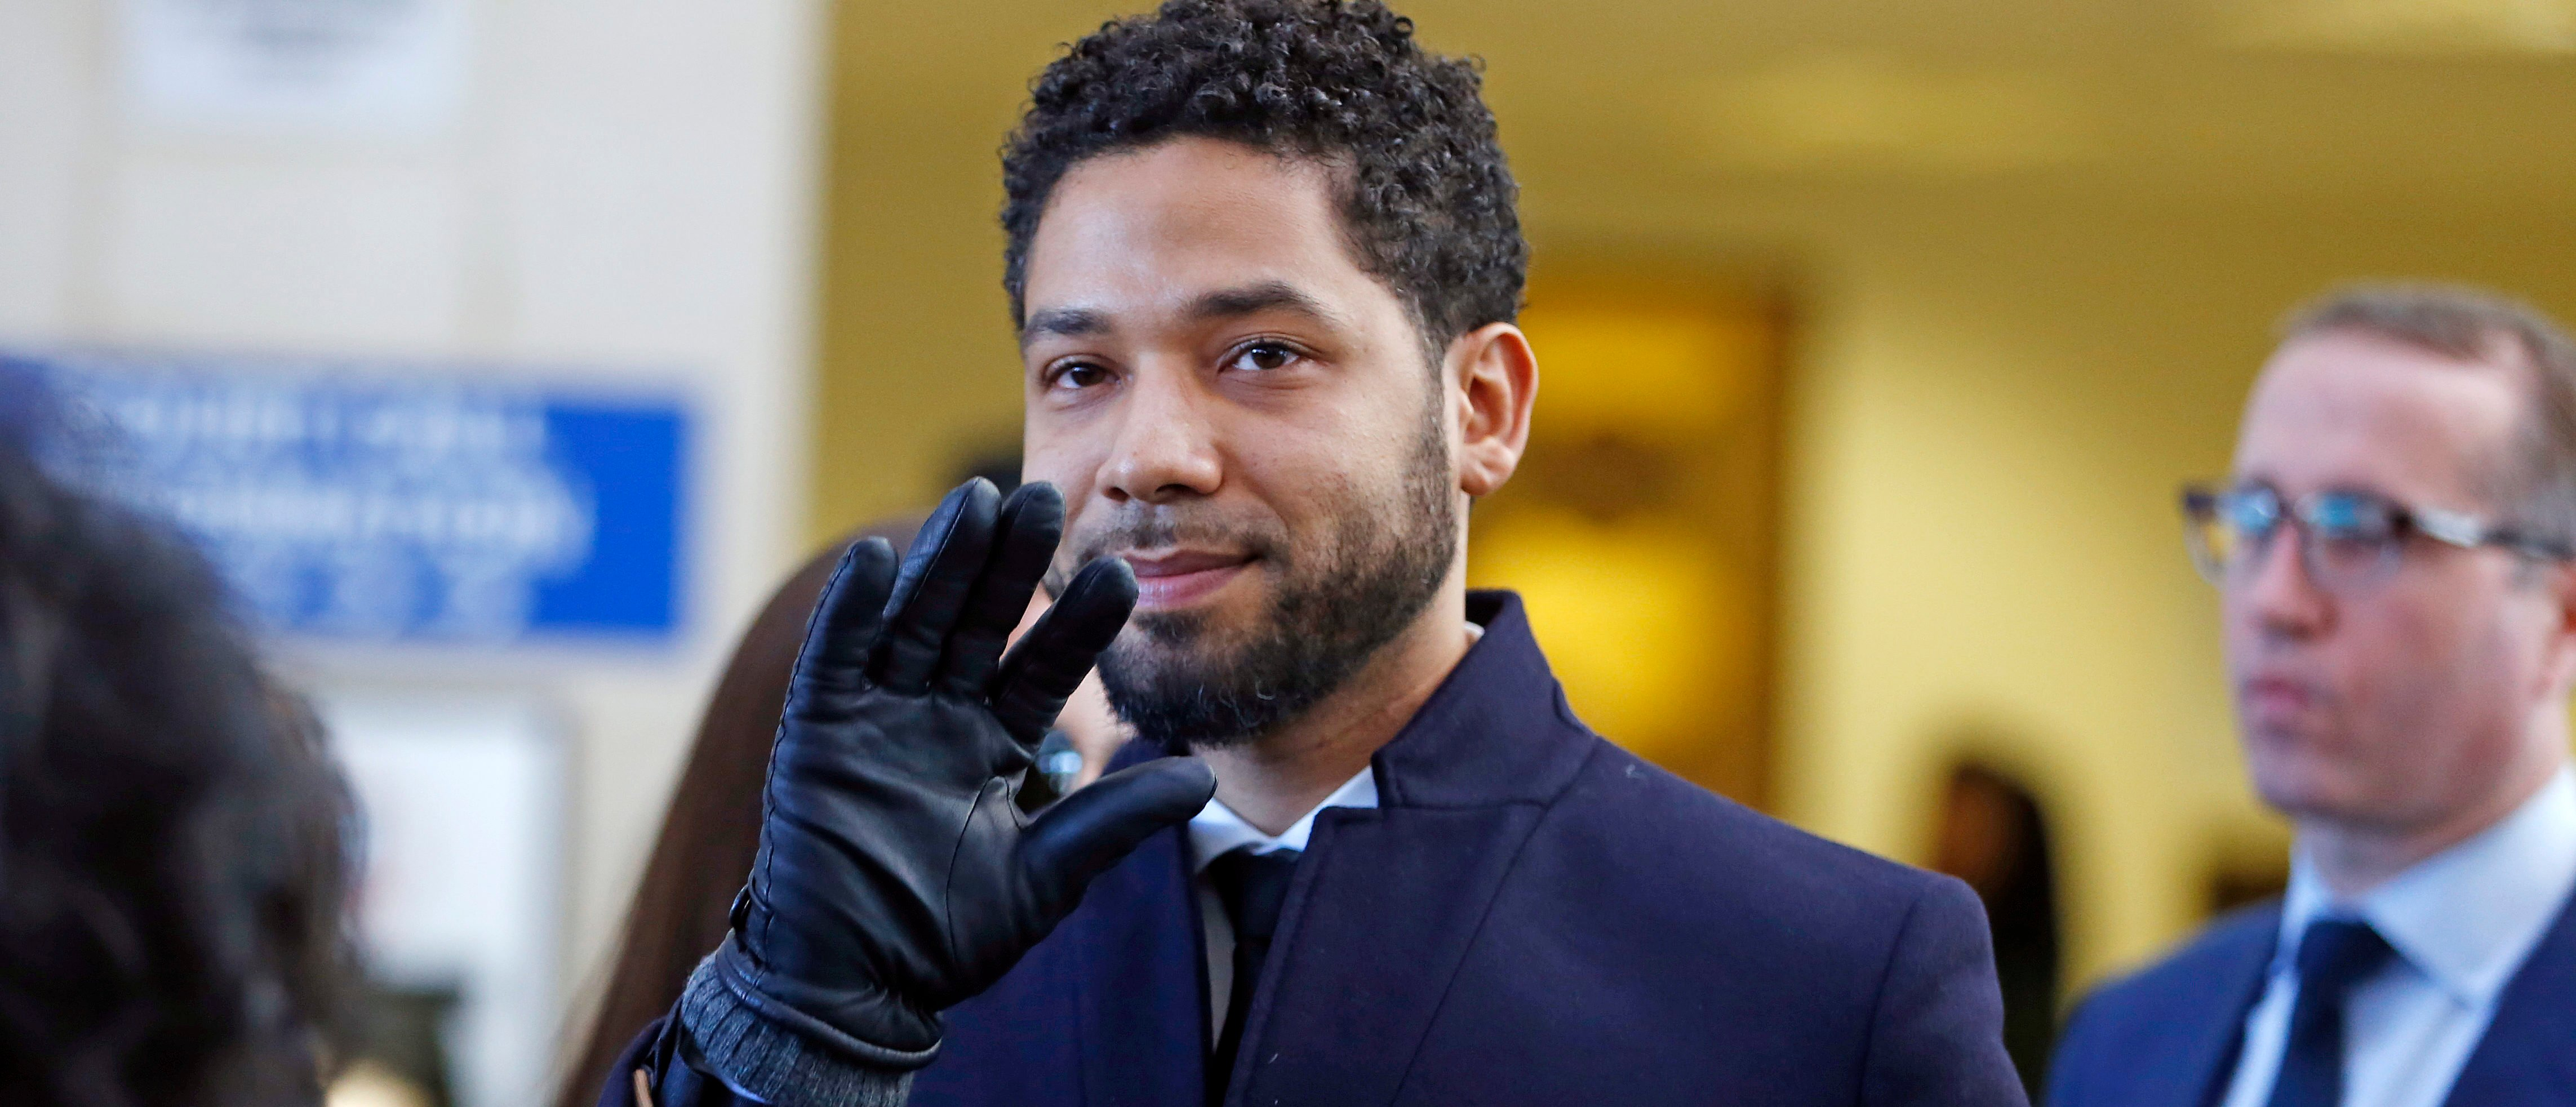 CHICAGO, ILLINOIS - MARCH 26: Actor Jussie Smollett waves as he follows his attorney to the microphones after his court appearance at Leighton Courthouse on March 26, 2019 in Chicago, Illinois. This morning in court it was announced that all charges were dropped against the actor. (Photo by Nuccio DiNuzzo/Getty Images)